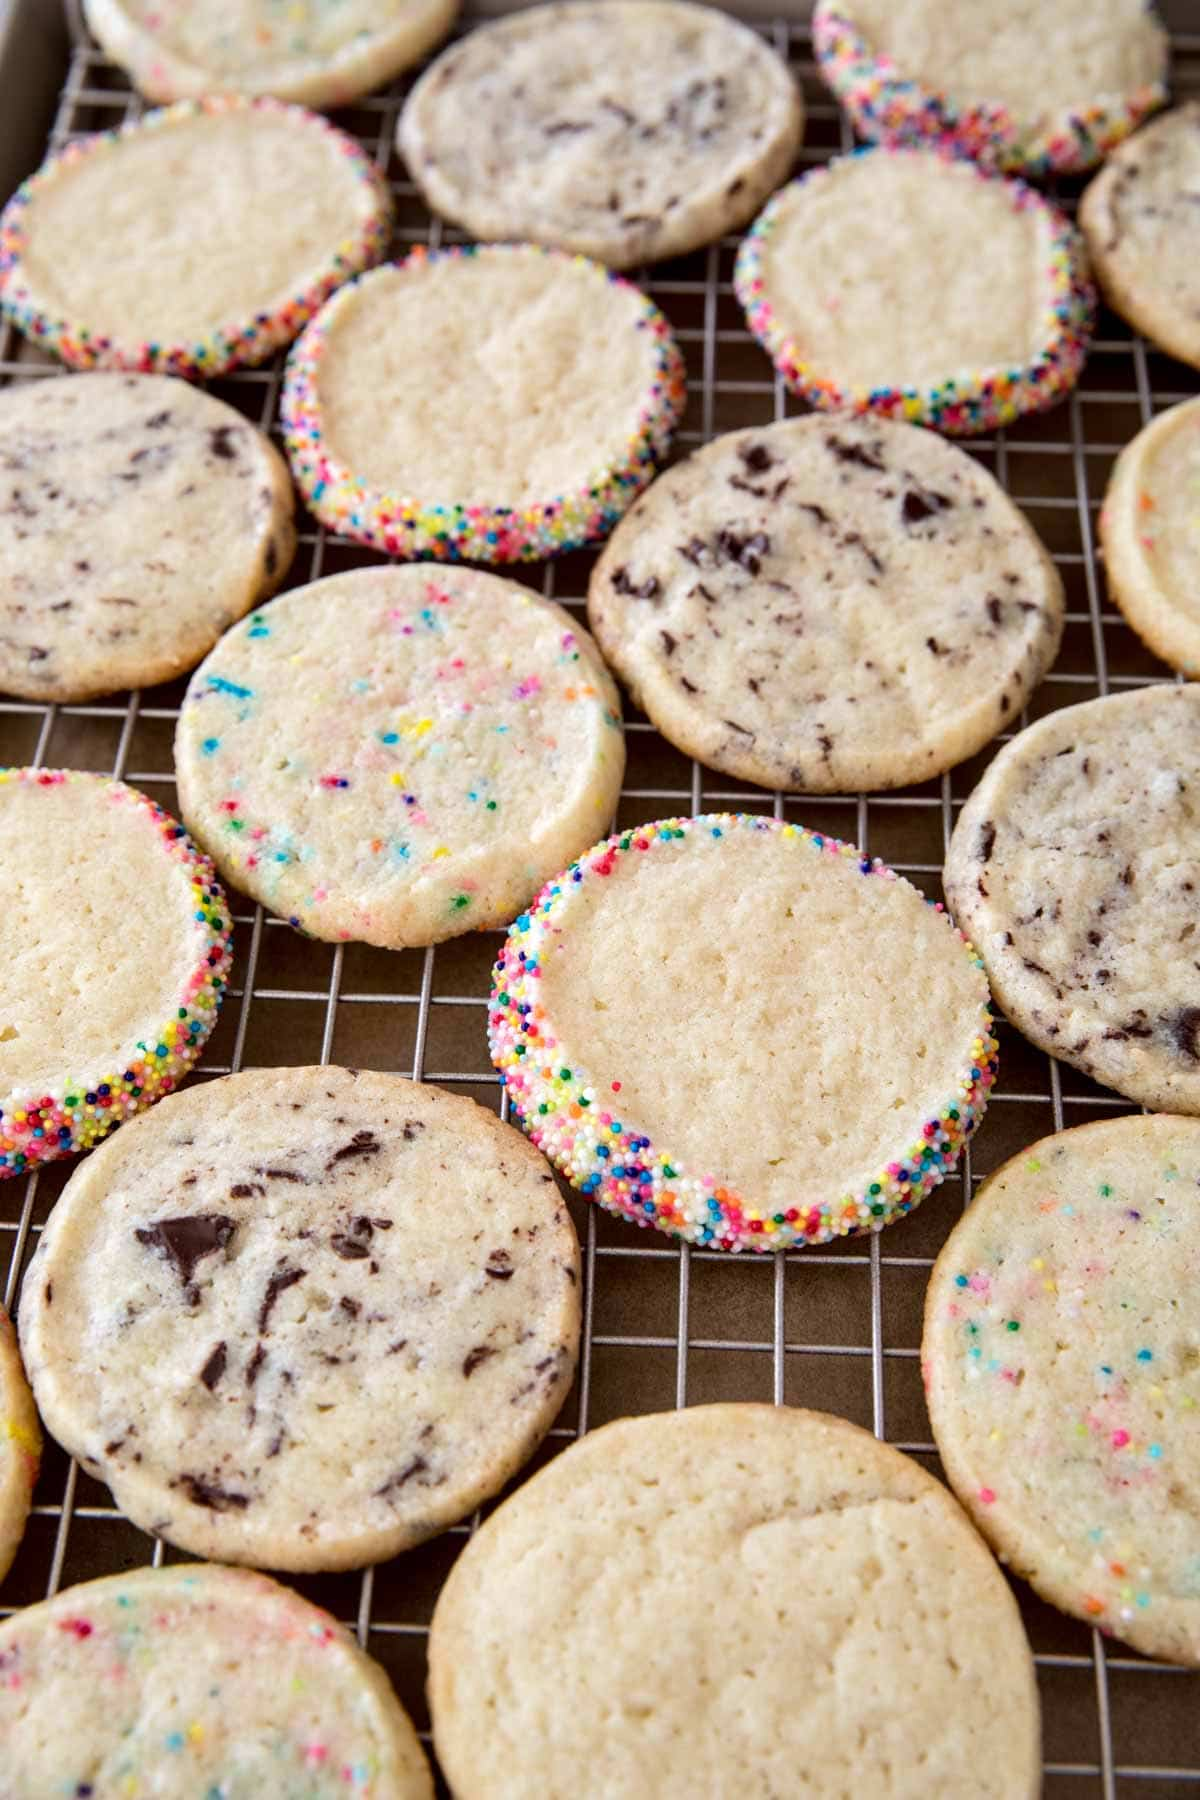 Icebox cookies cooling on cooling rack